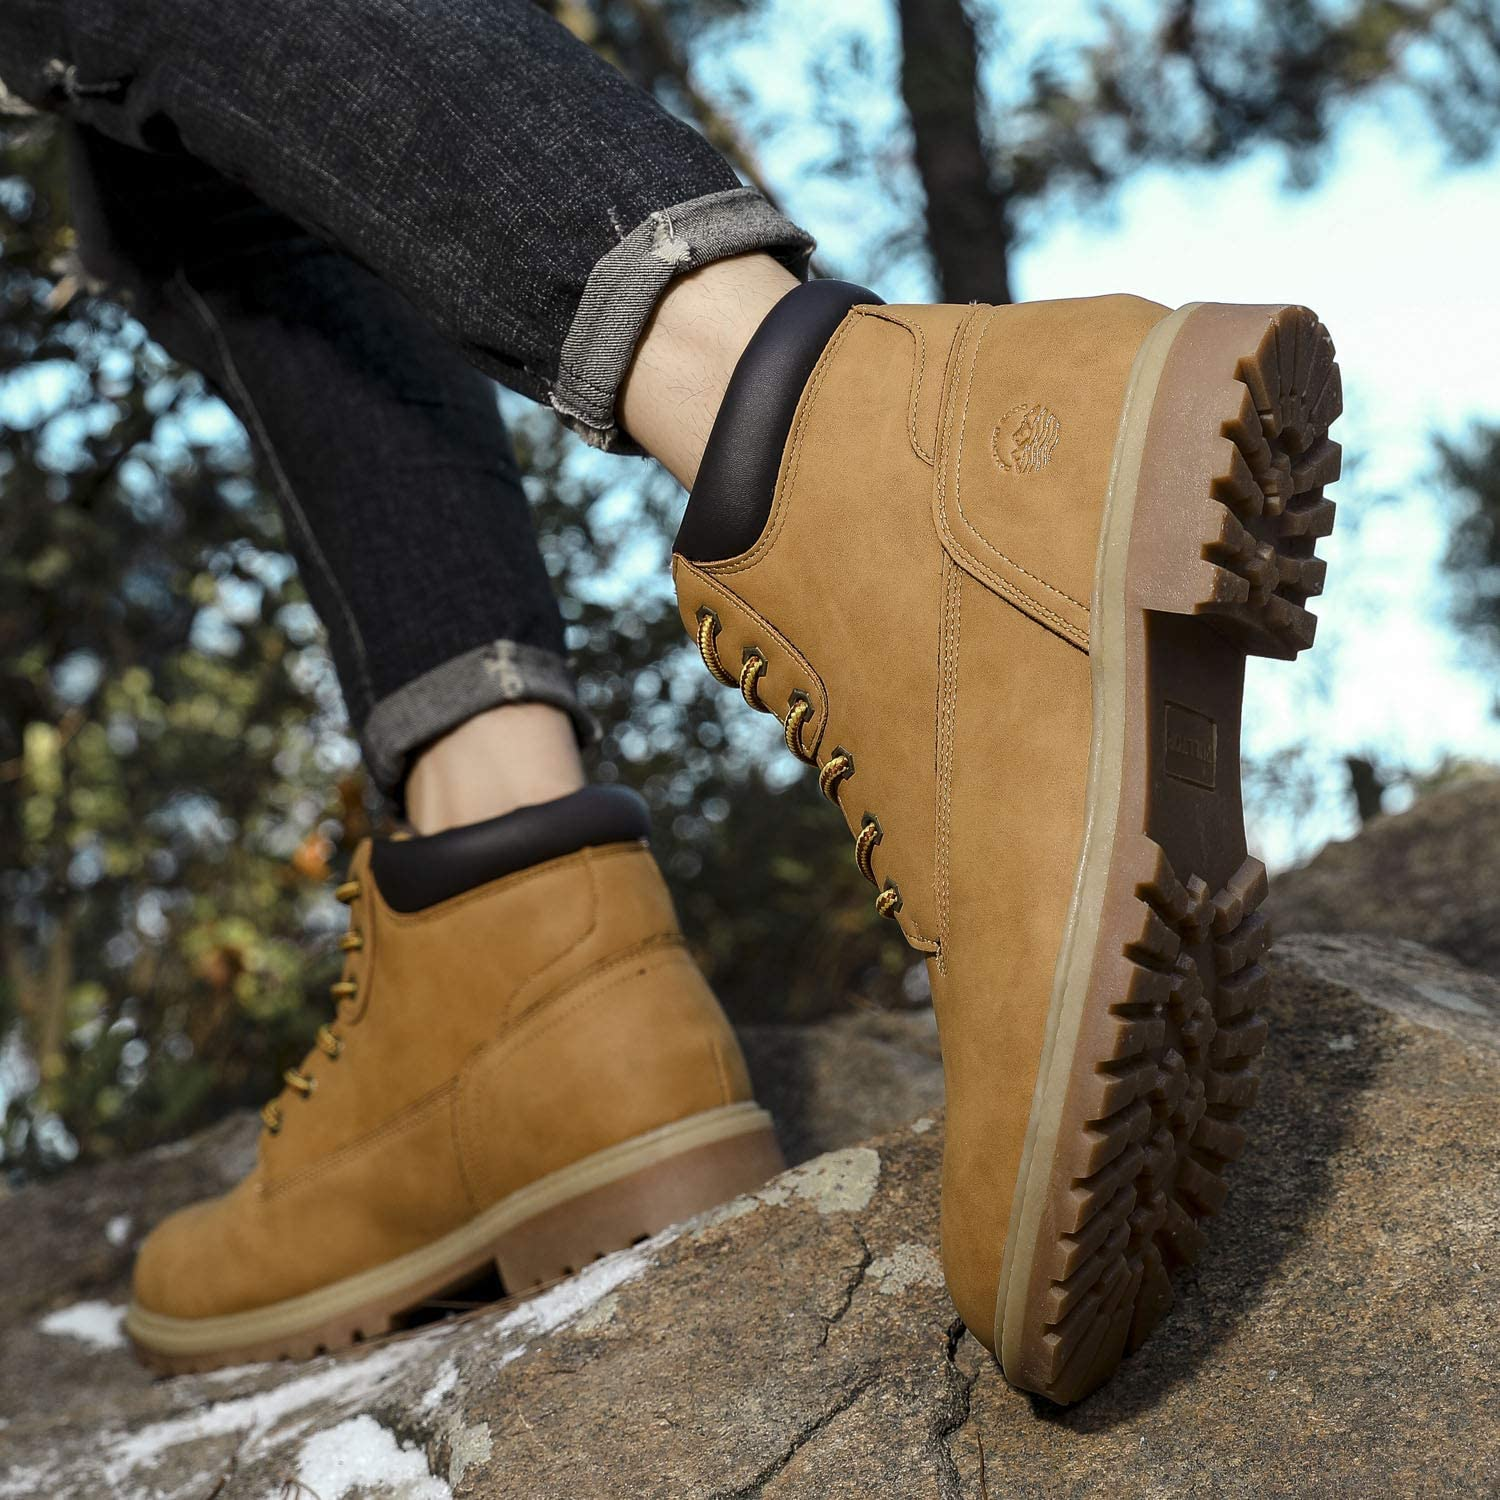 Pulltop Mens Chelsea Boots Motorcycle Chukka Boots Casual Hiking